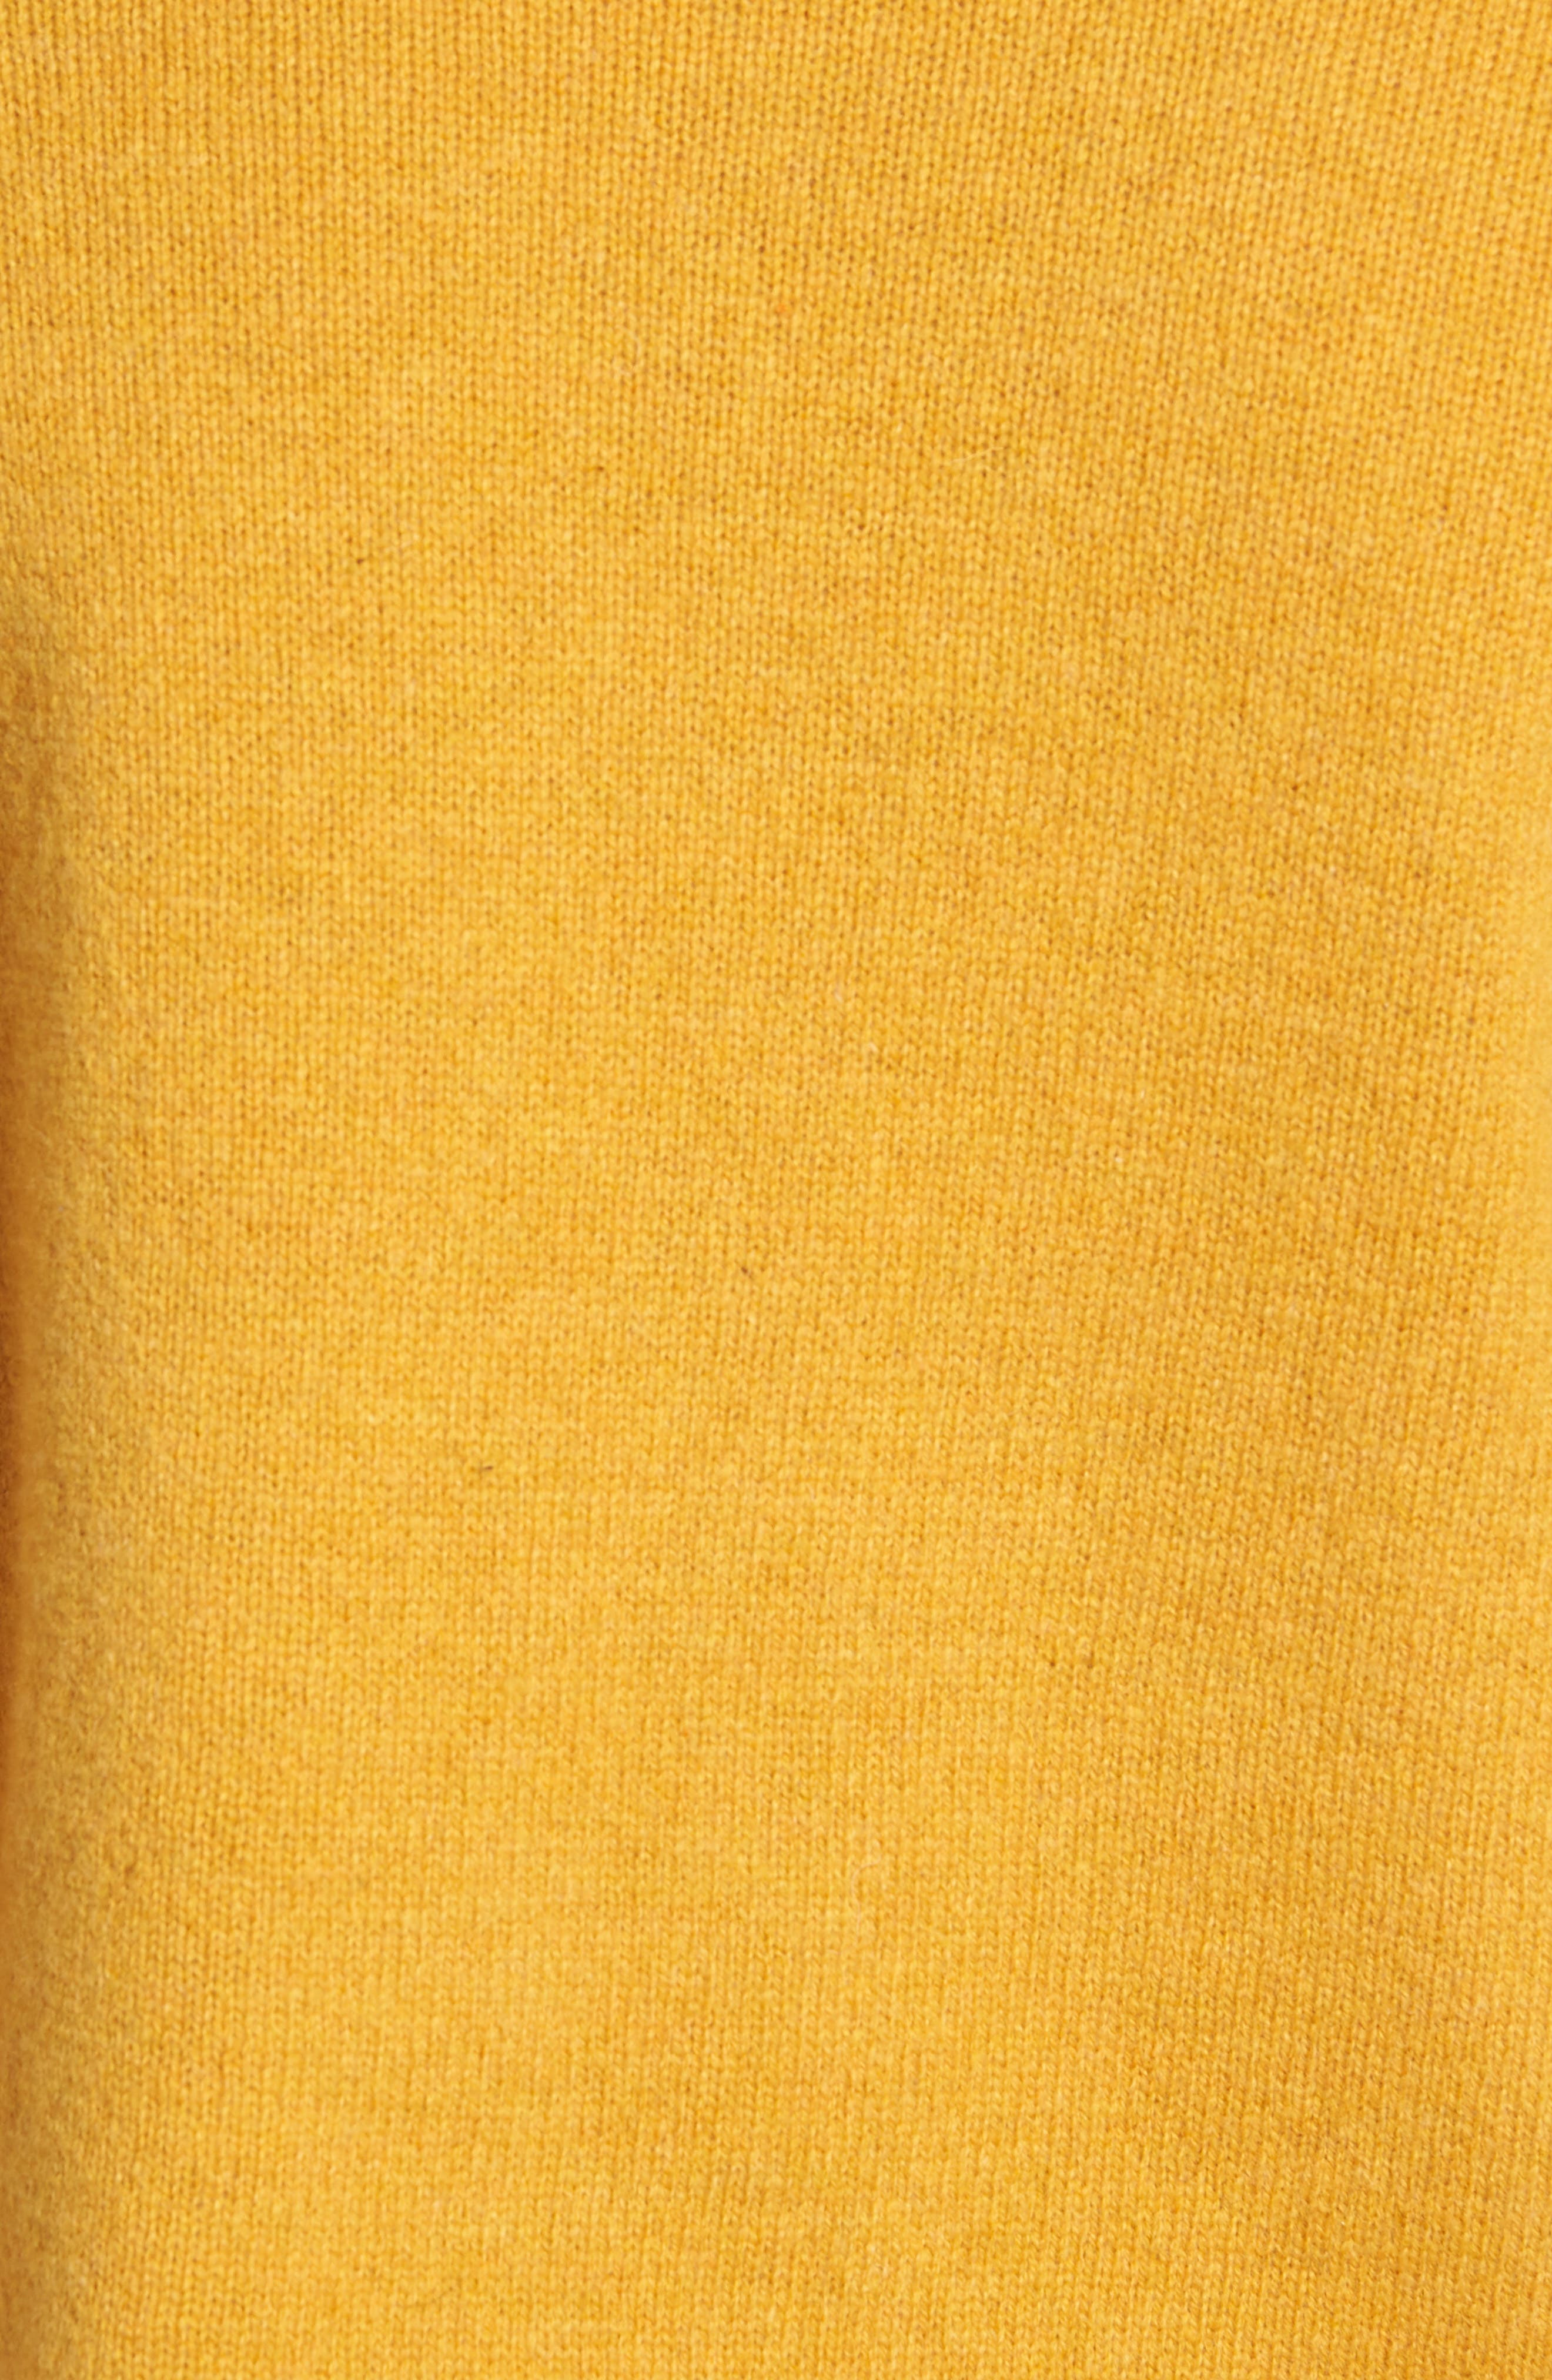 New Coban Regular Fit Wool Sweater,                             Alternate thumbnail 5, color,                             CURRY